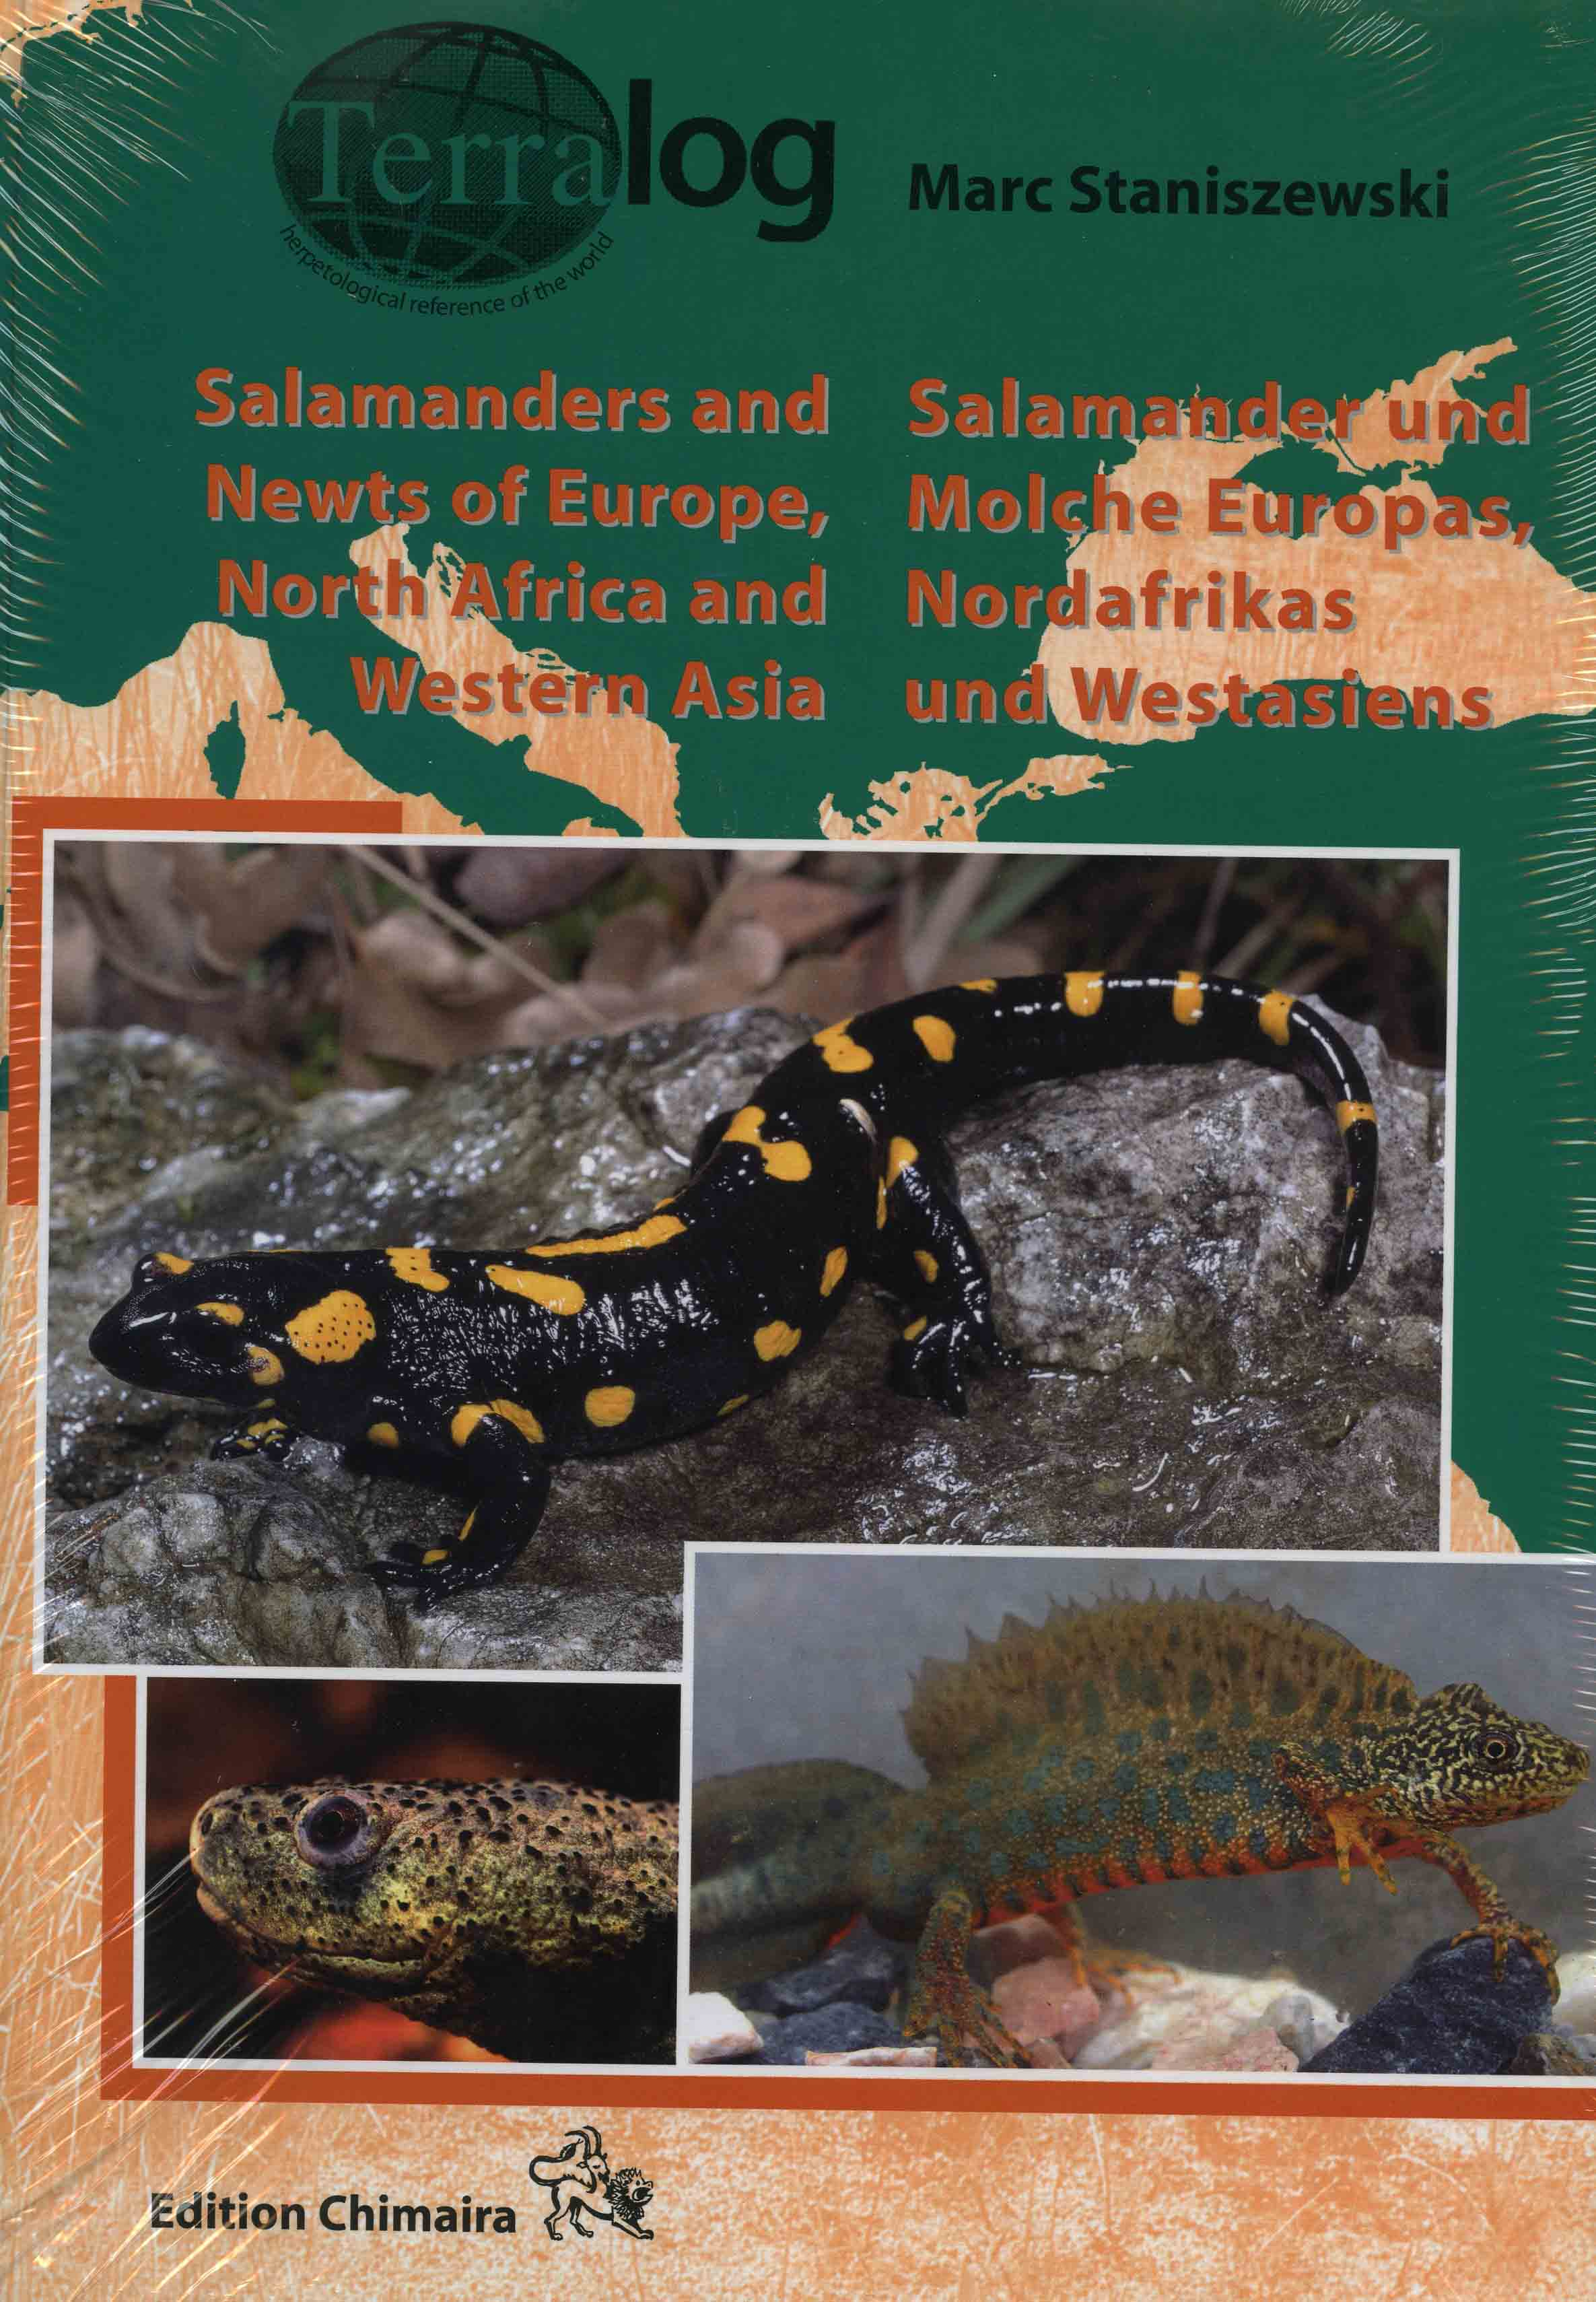 Image for Salamanders and Newts of Europe, North Africa, Western Asia,